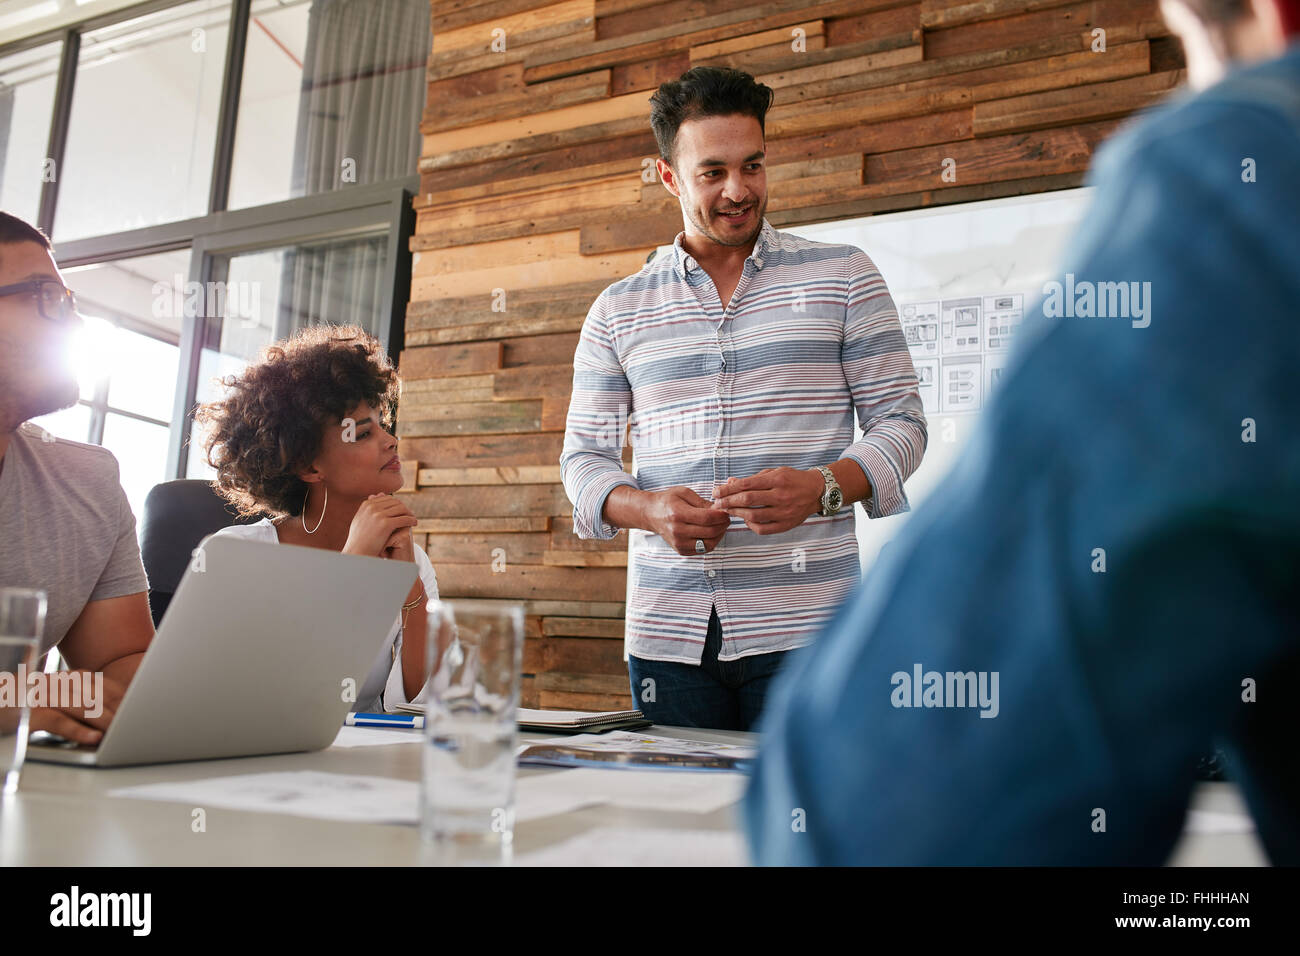 Portrait of young man with colleagues having meeting in conference room. Diverse group of young designers brainstorming - Stock Image